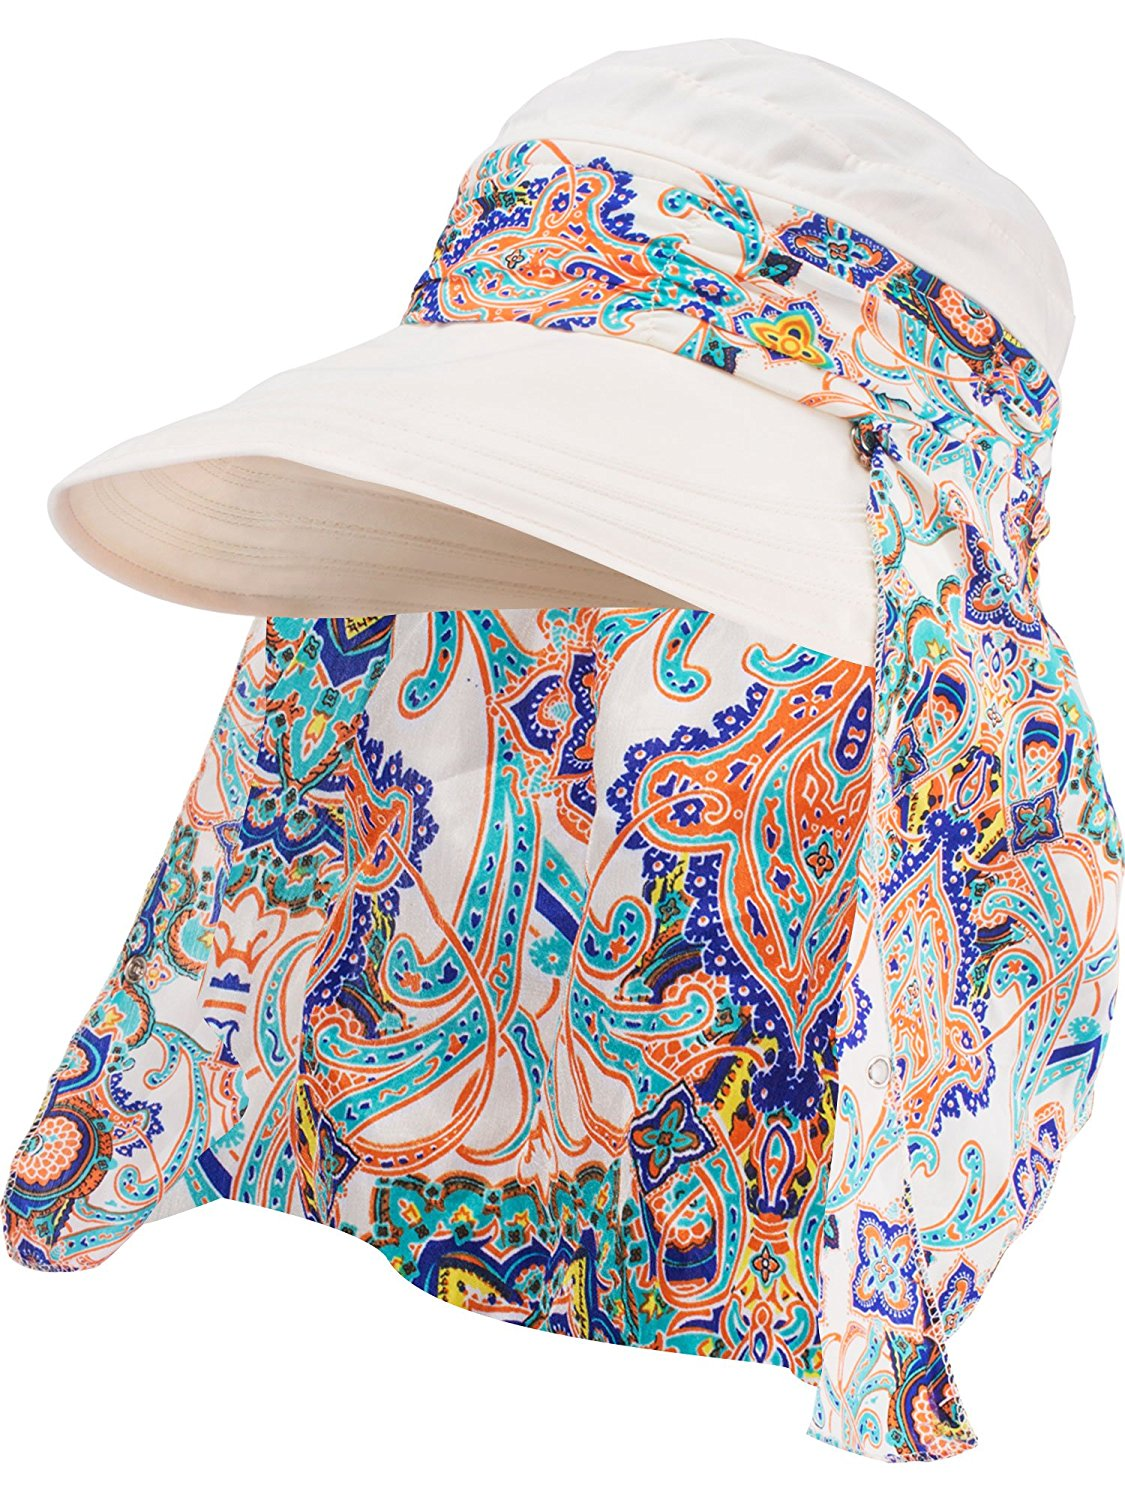 8539fee39d6 Get Quotations · Hestya 1 Pack Protection Summer Sun Hats Wide Brim Cap Sun  Visor Hats with Neck Protector